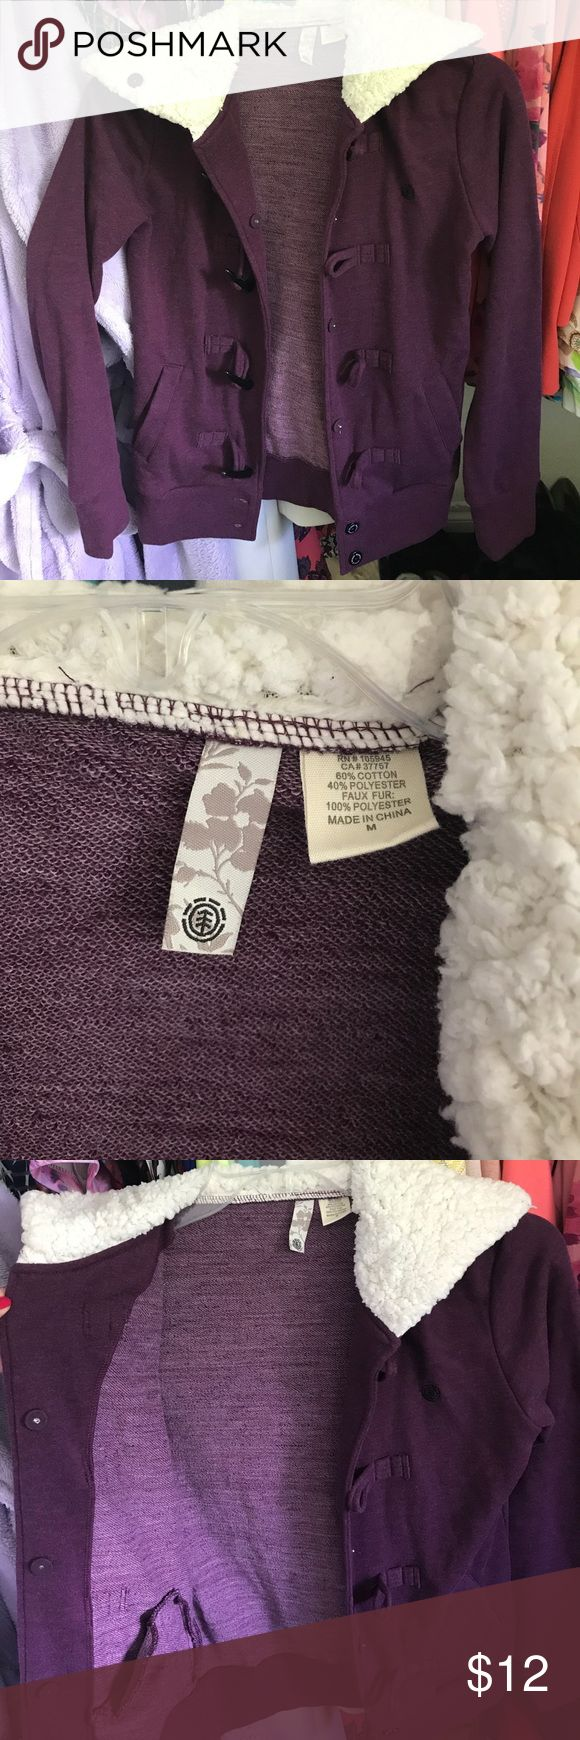 Women's Element Purple Hoodie! Size Medium! Worn maybe twice. Adorable and super comfy Women's Element Purple Hoodie. Purchased for $60 Going for $12! Element Sweaters